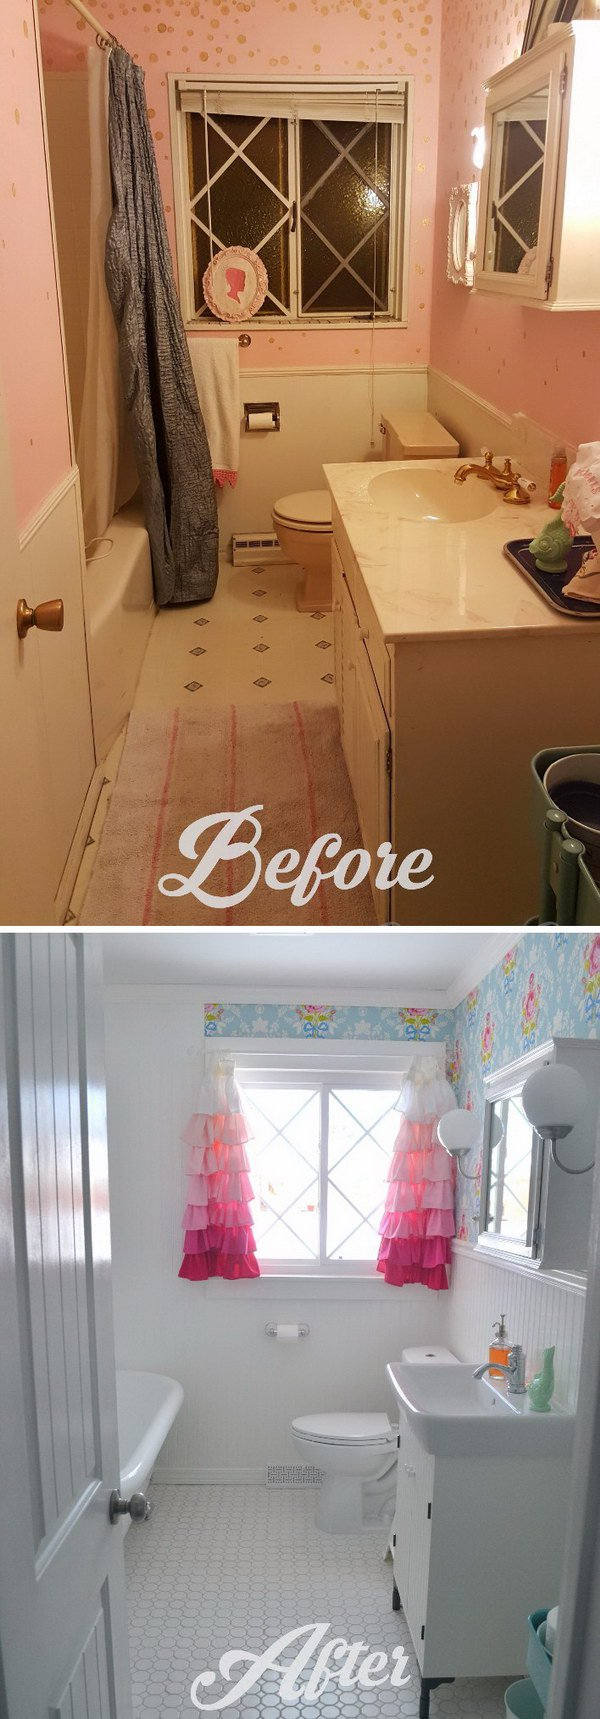 53-bathroom-remodel-before-and-after